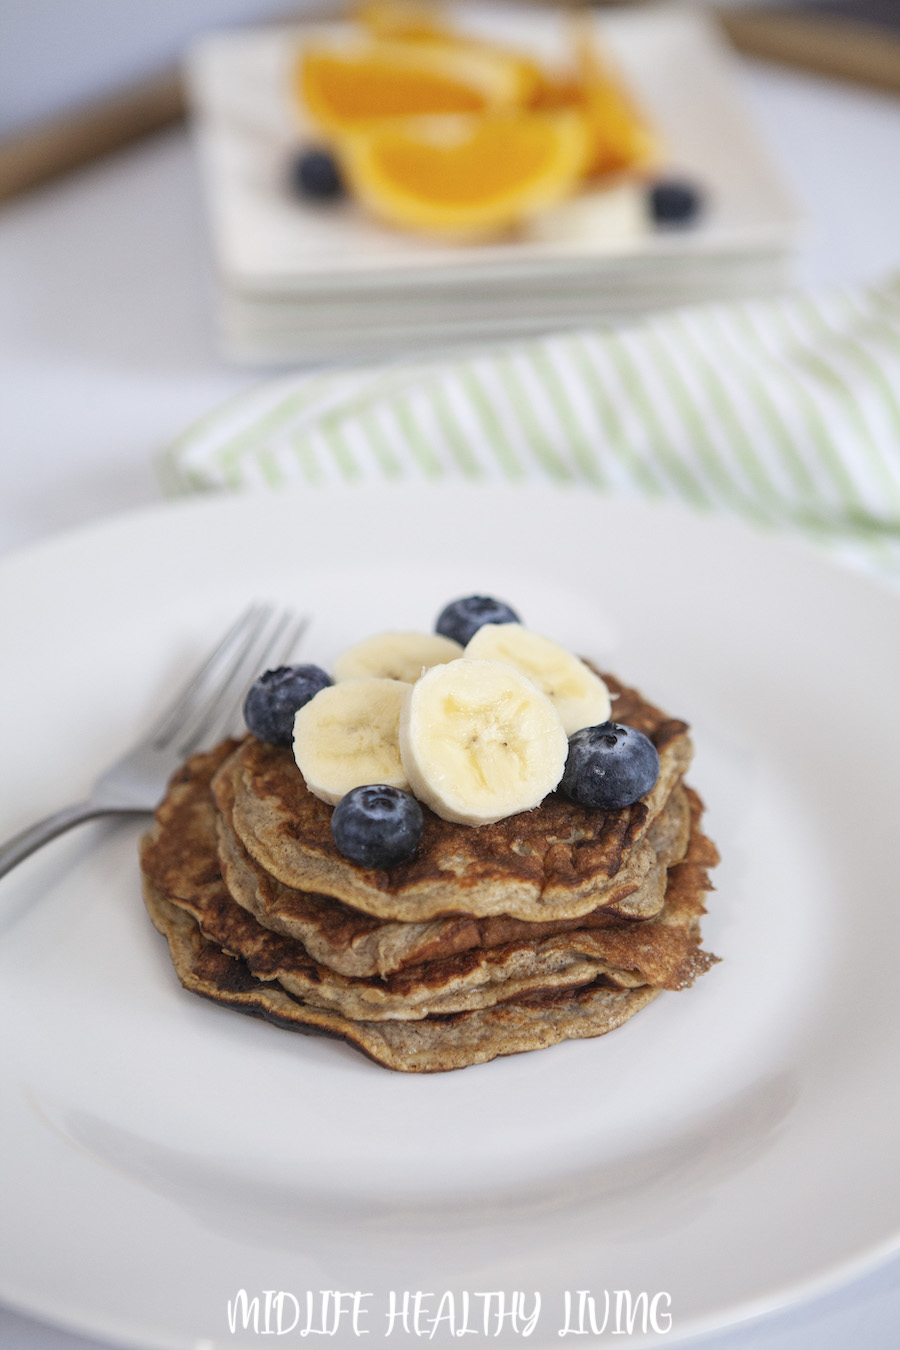 A plate full of healthy pancakes ready to serve.